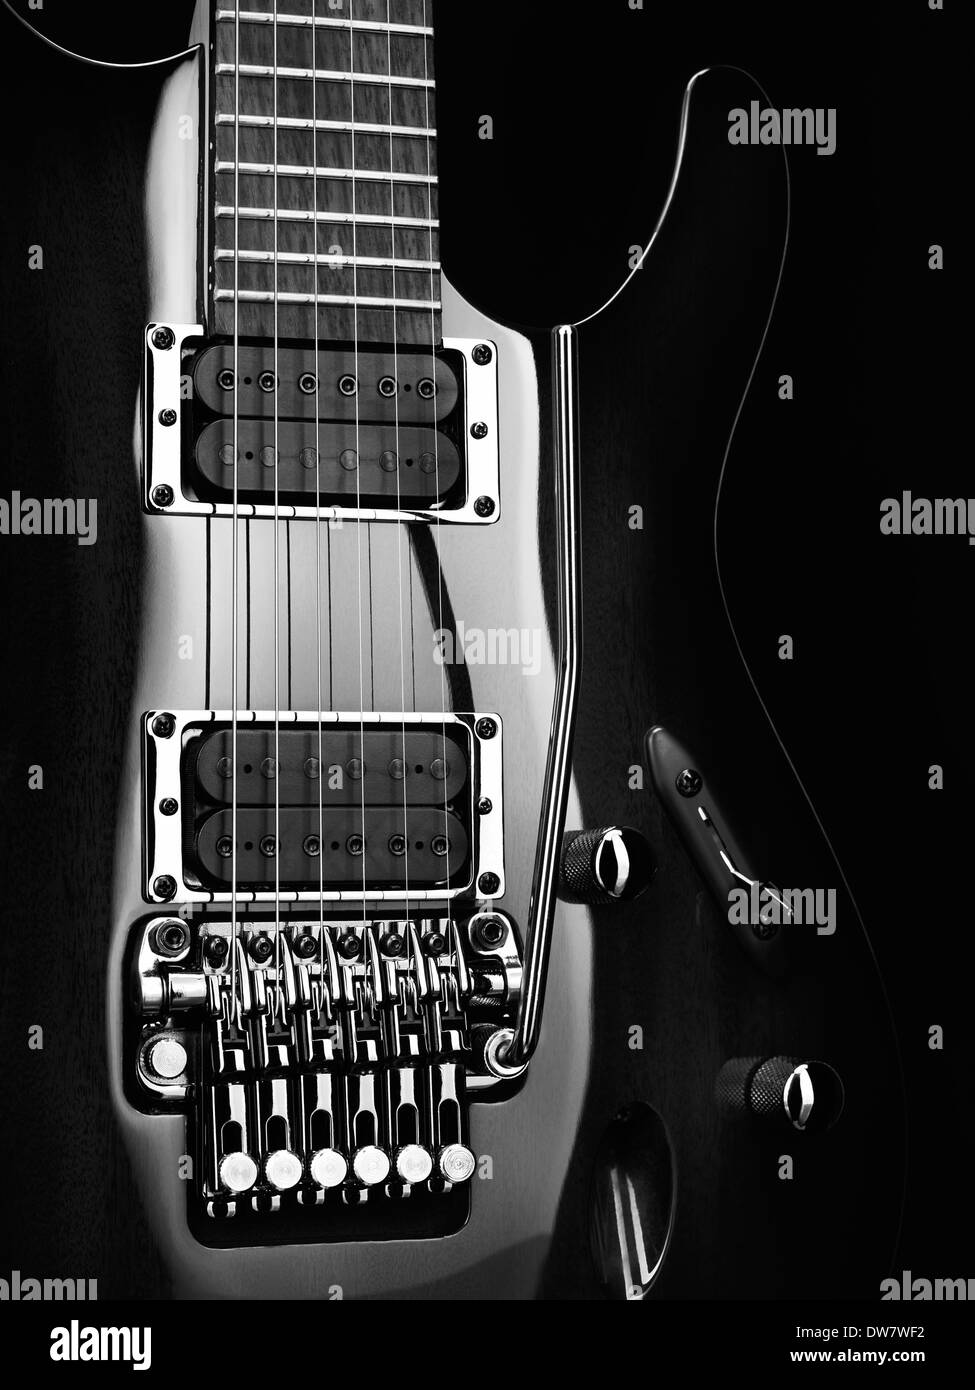 Artistic Closeup Of An Electric Guitar Ibanez With Chrome Parts On